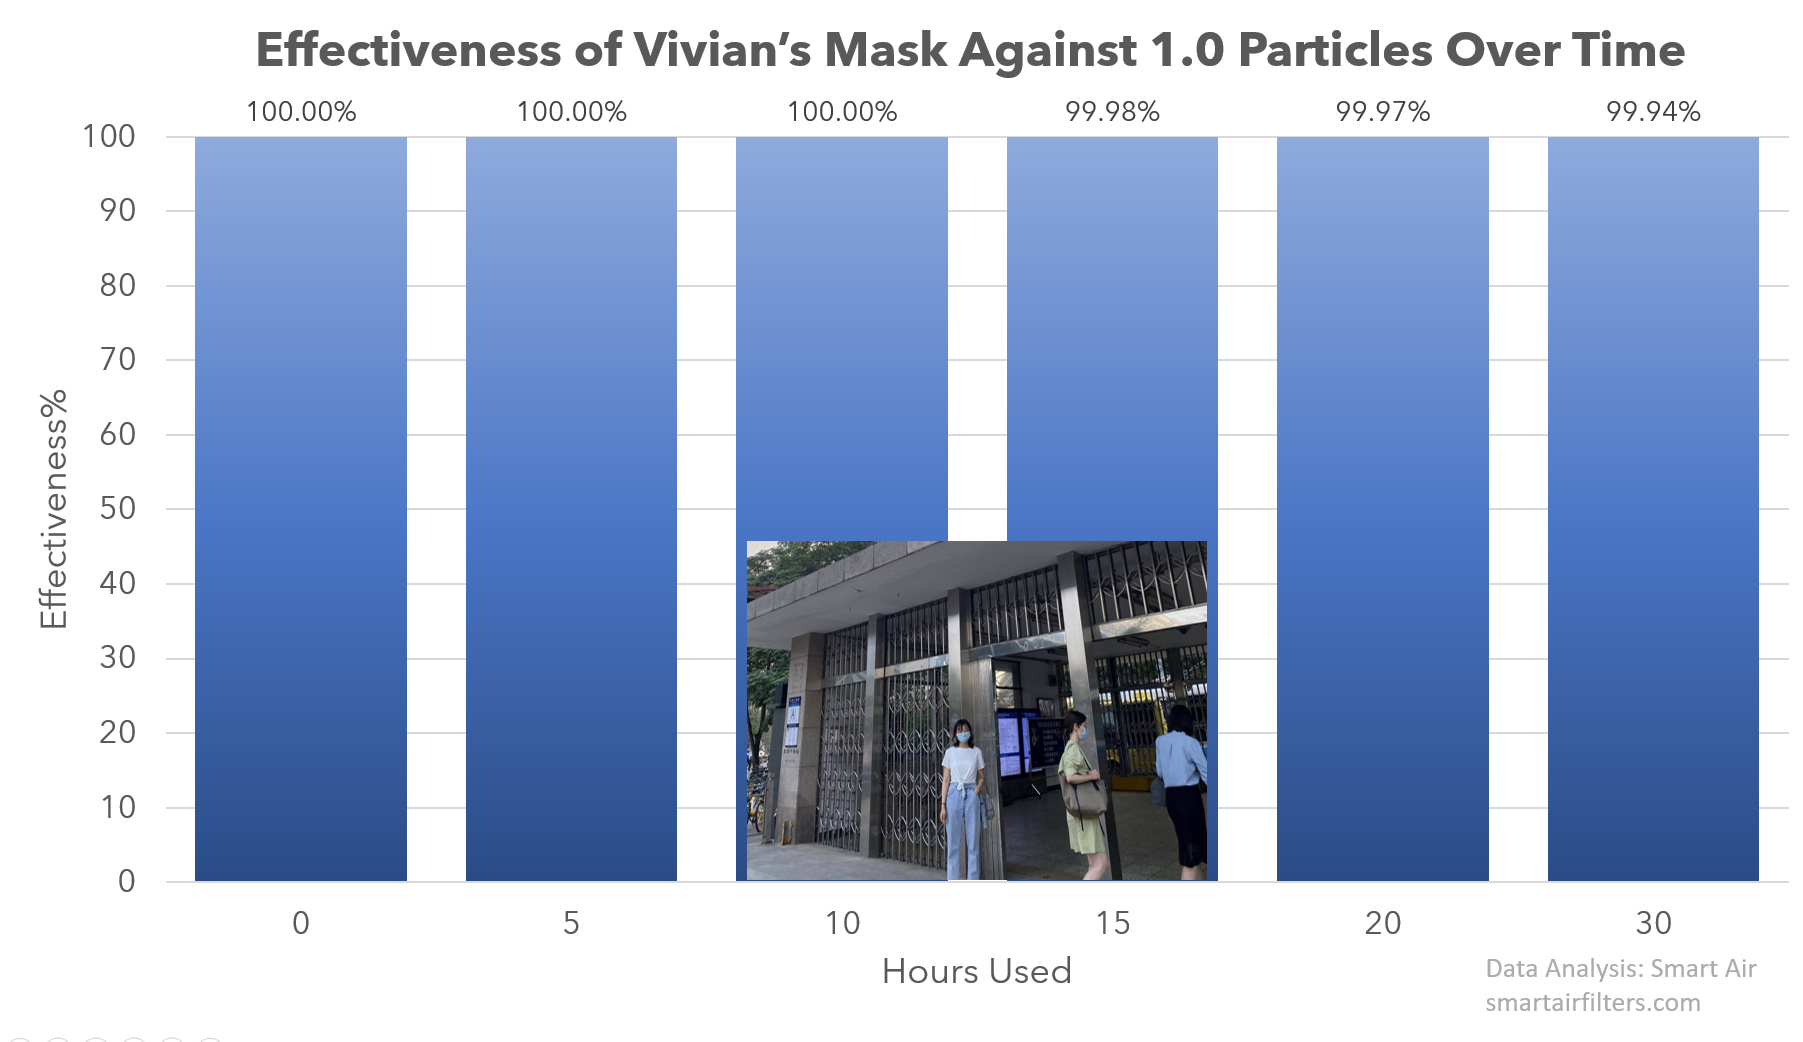 Effectiveness of Surgical Mask Against 1.0 Particles